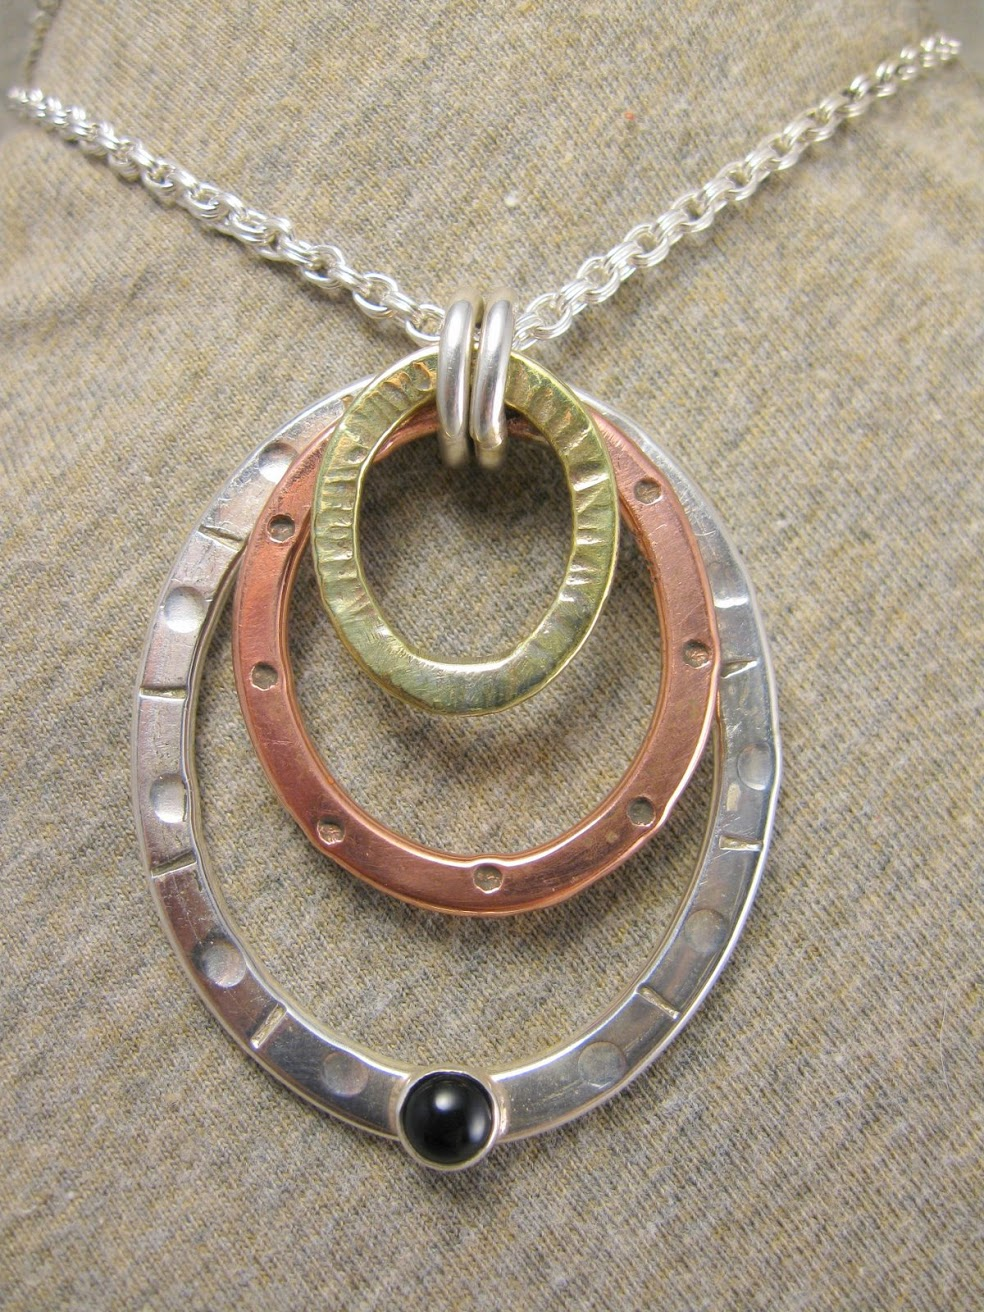 tri circle pendant necklace